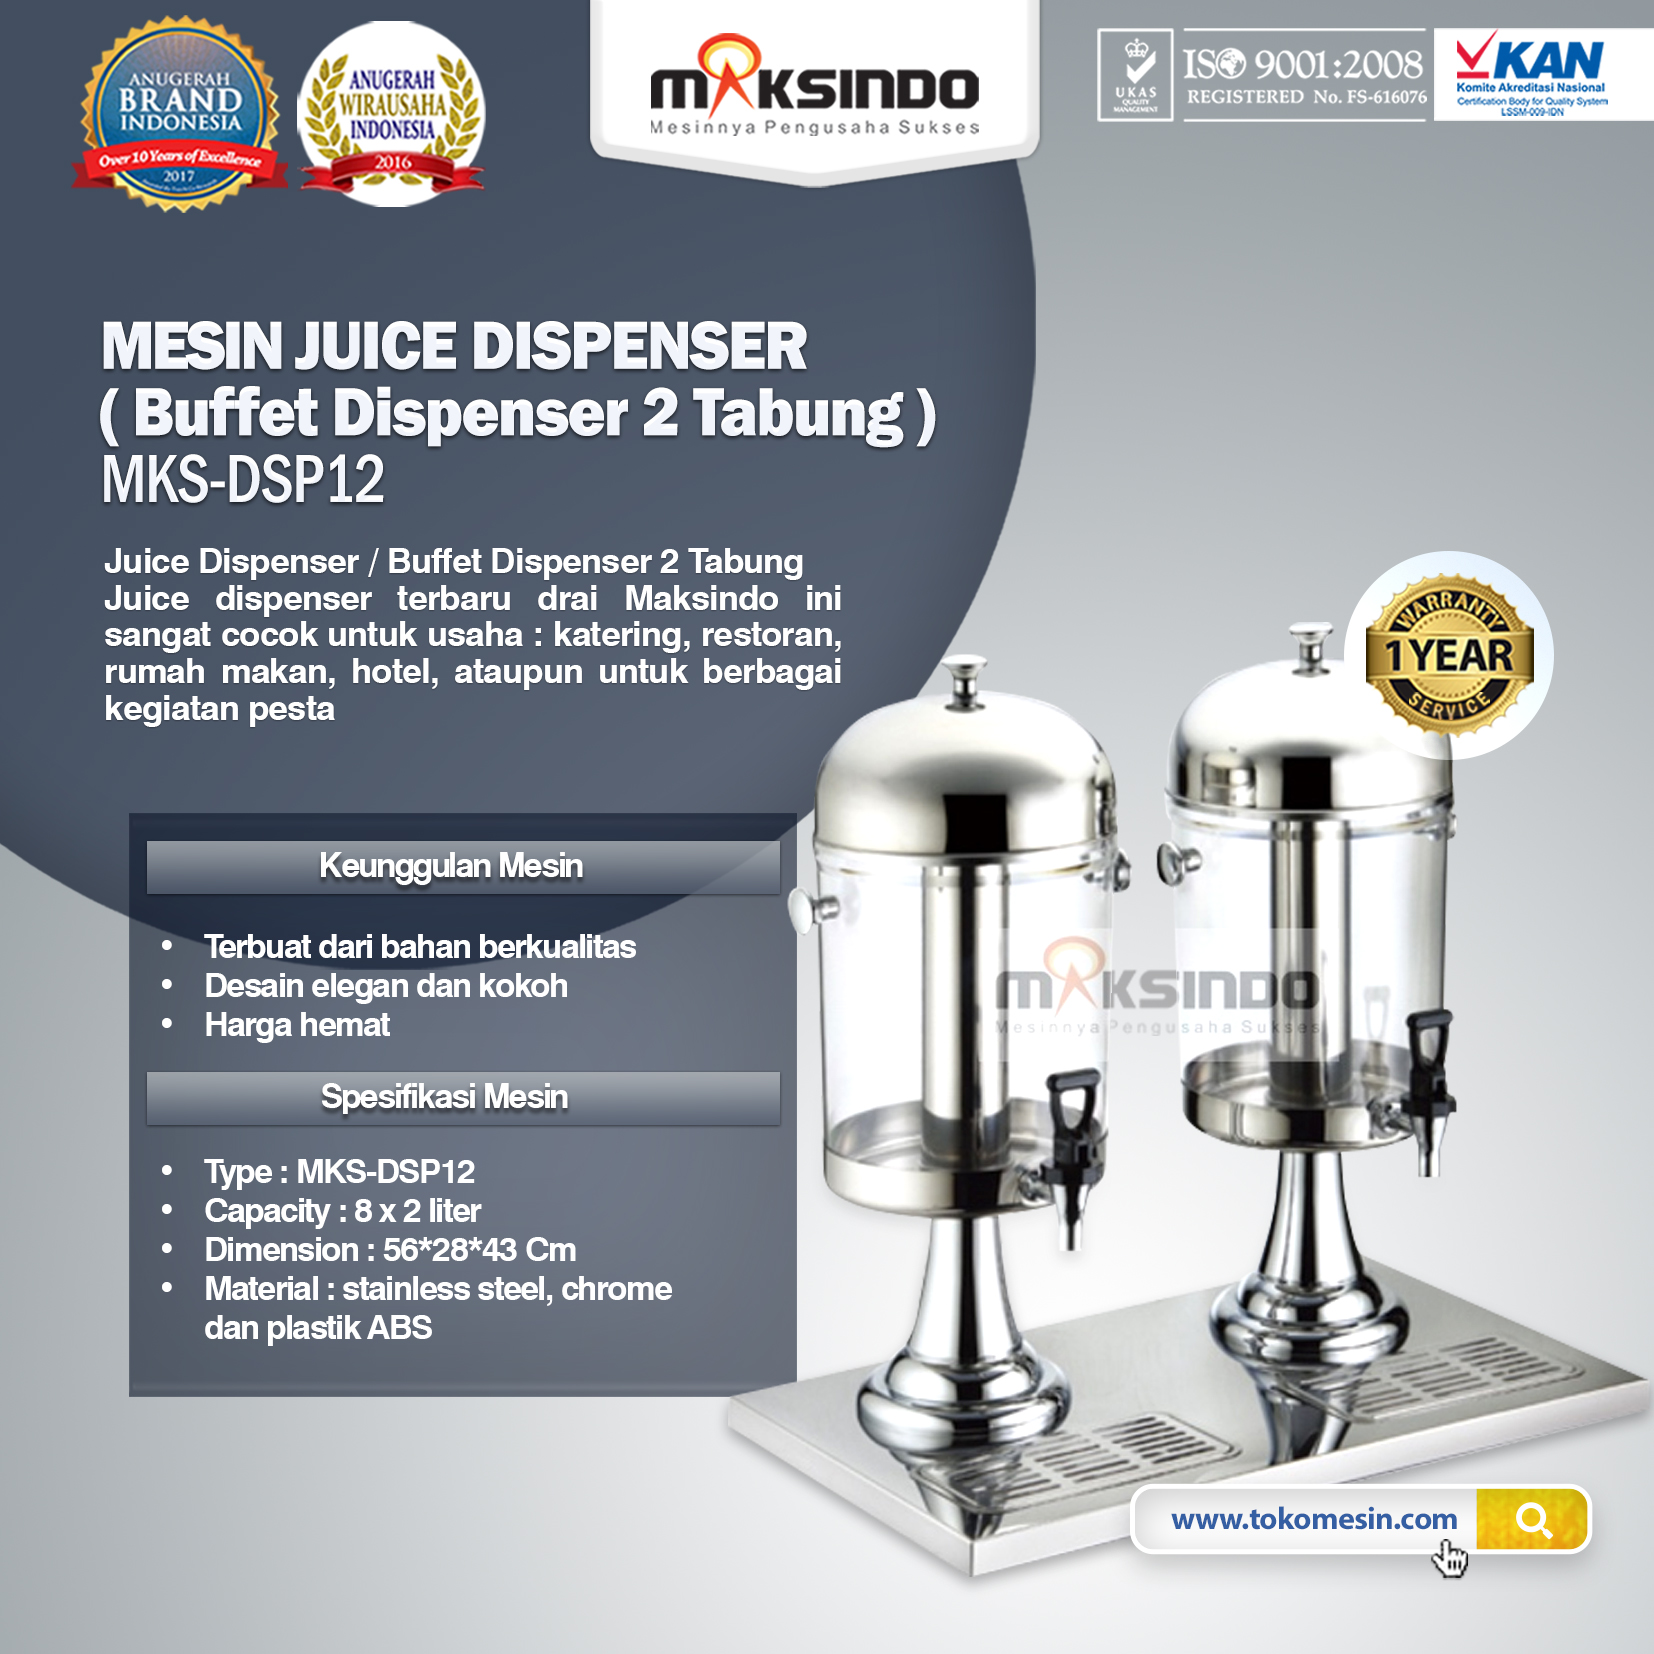 Juice Dispenser - Buffet Dispenser 2 Tabung MKS-DSP12